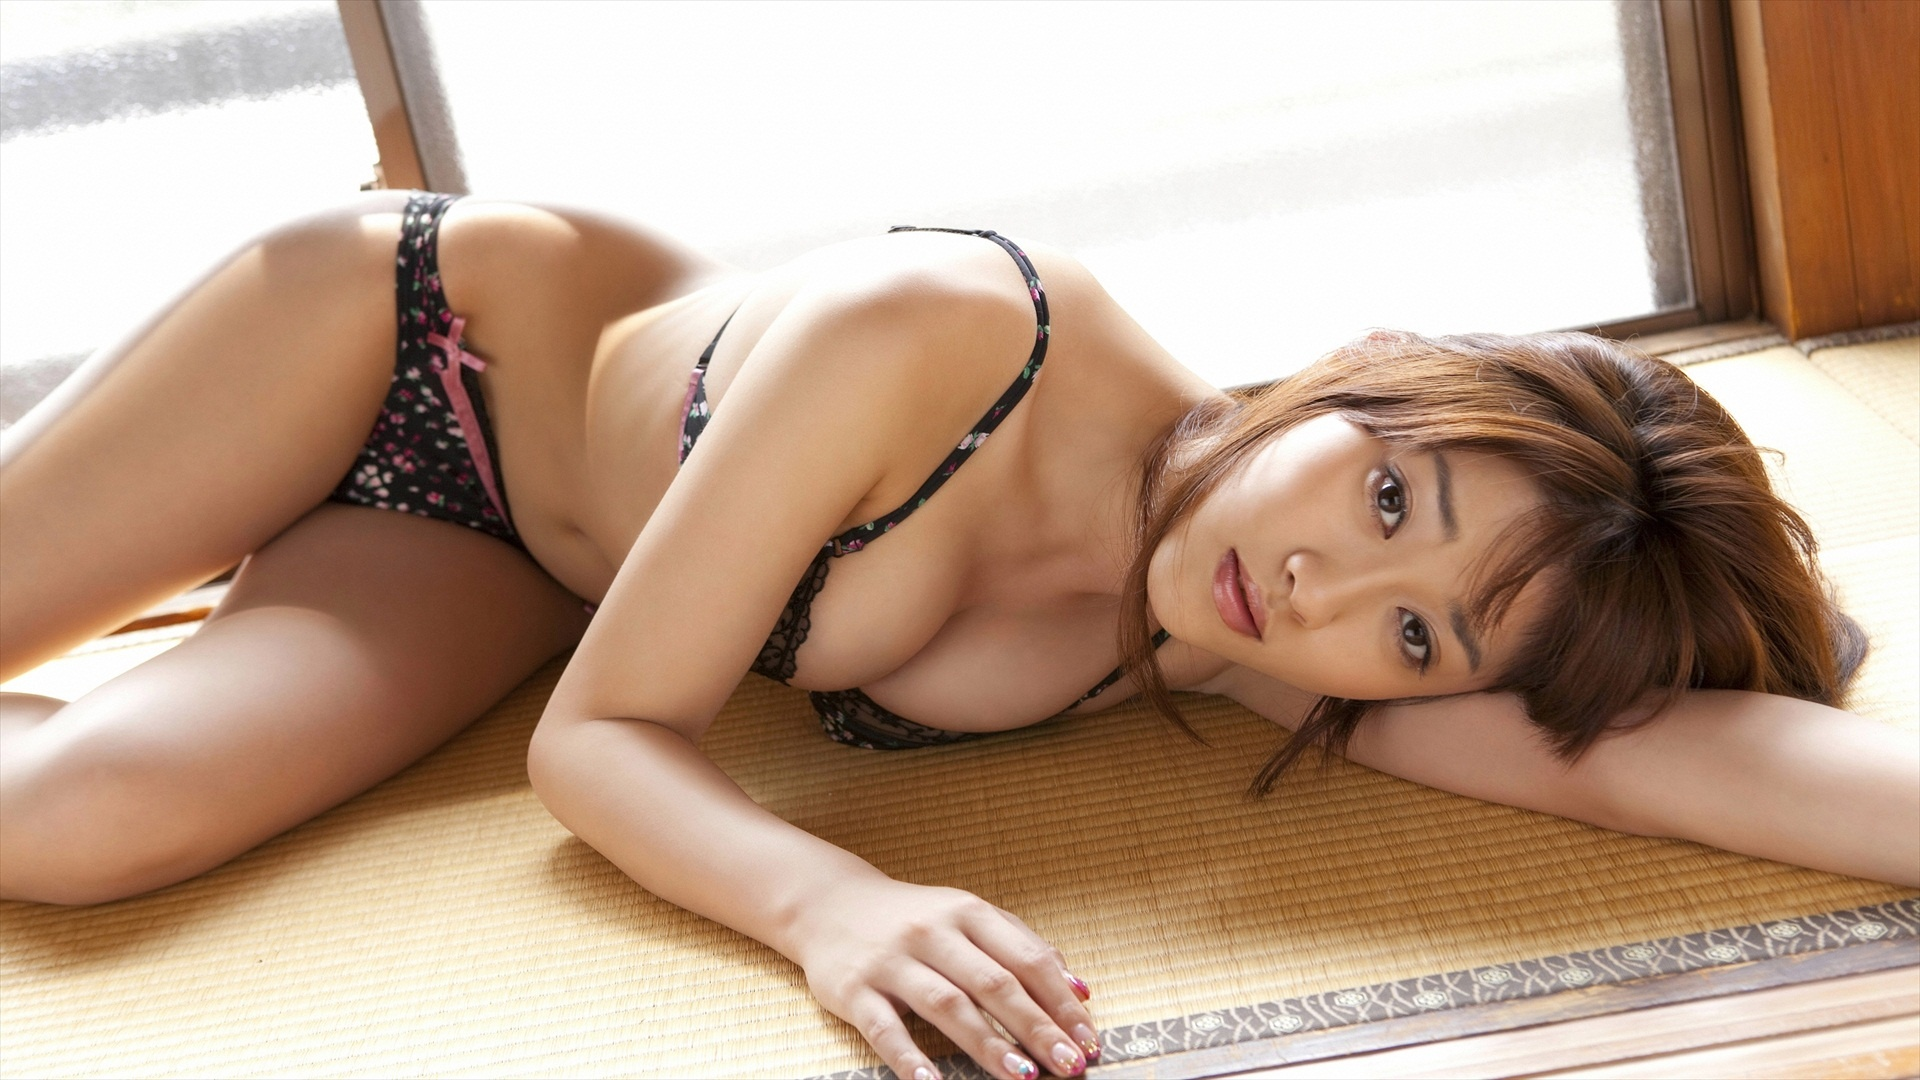 Wallpaper Mikie Hara, Asian, Hot, Sexy, Busty, Lingerie -4440